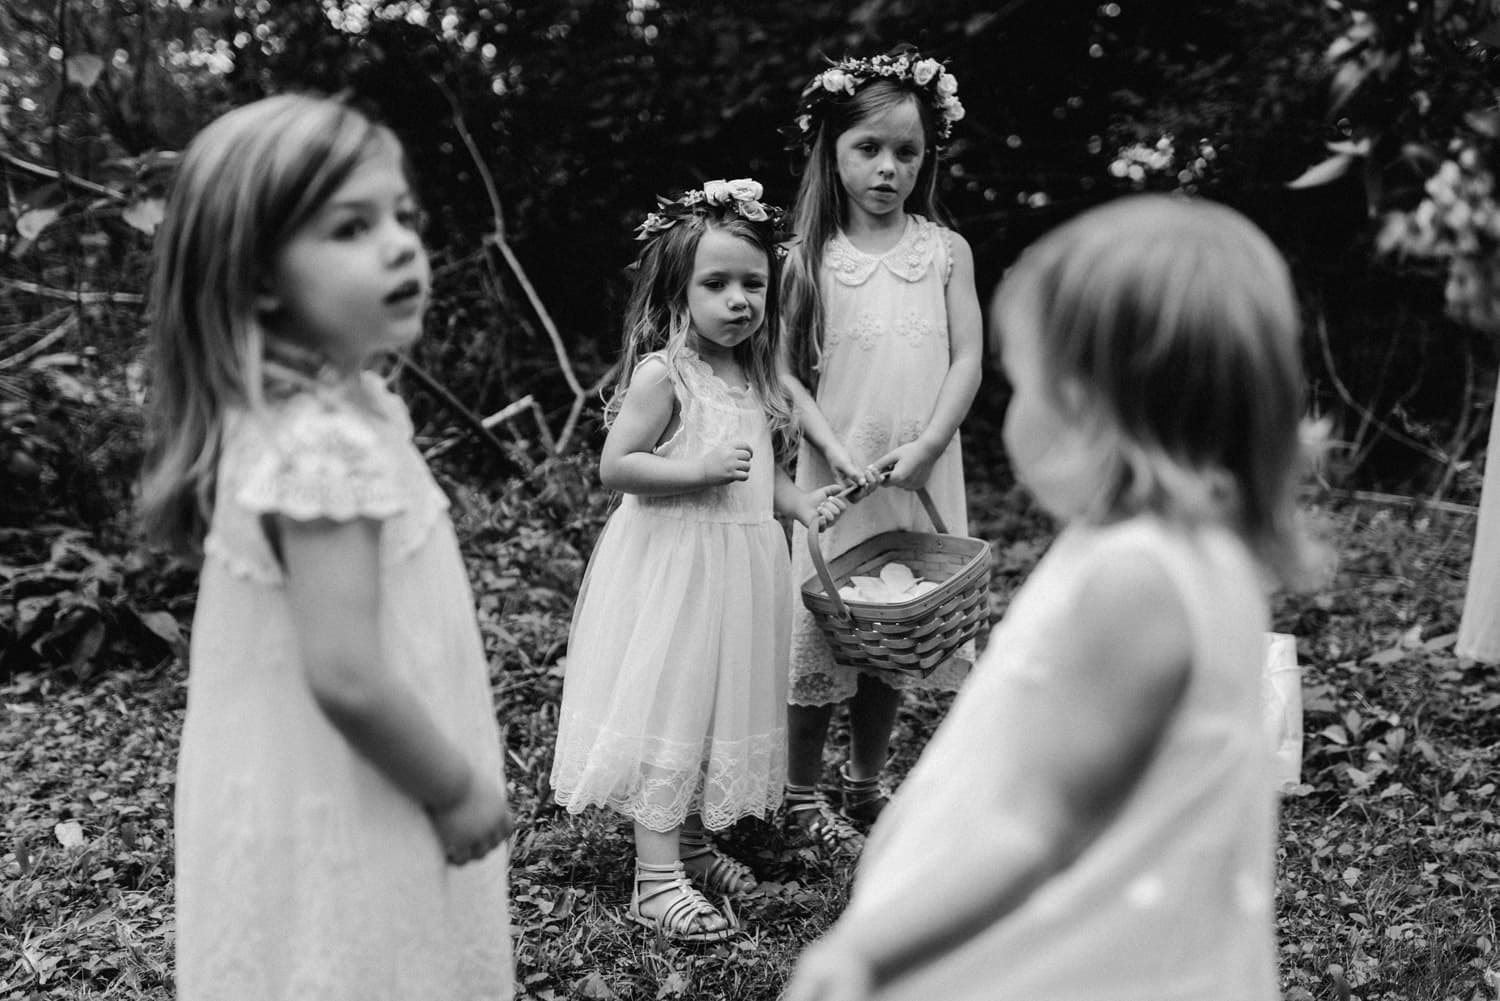 candid moment of kids at outdoor wedding